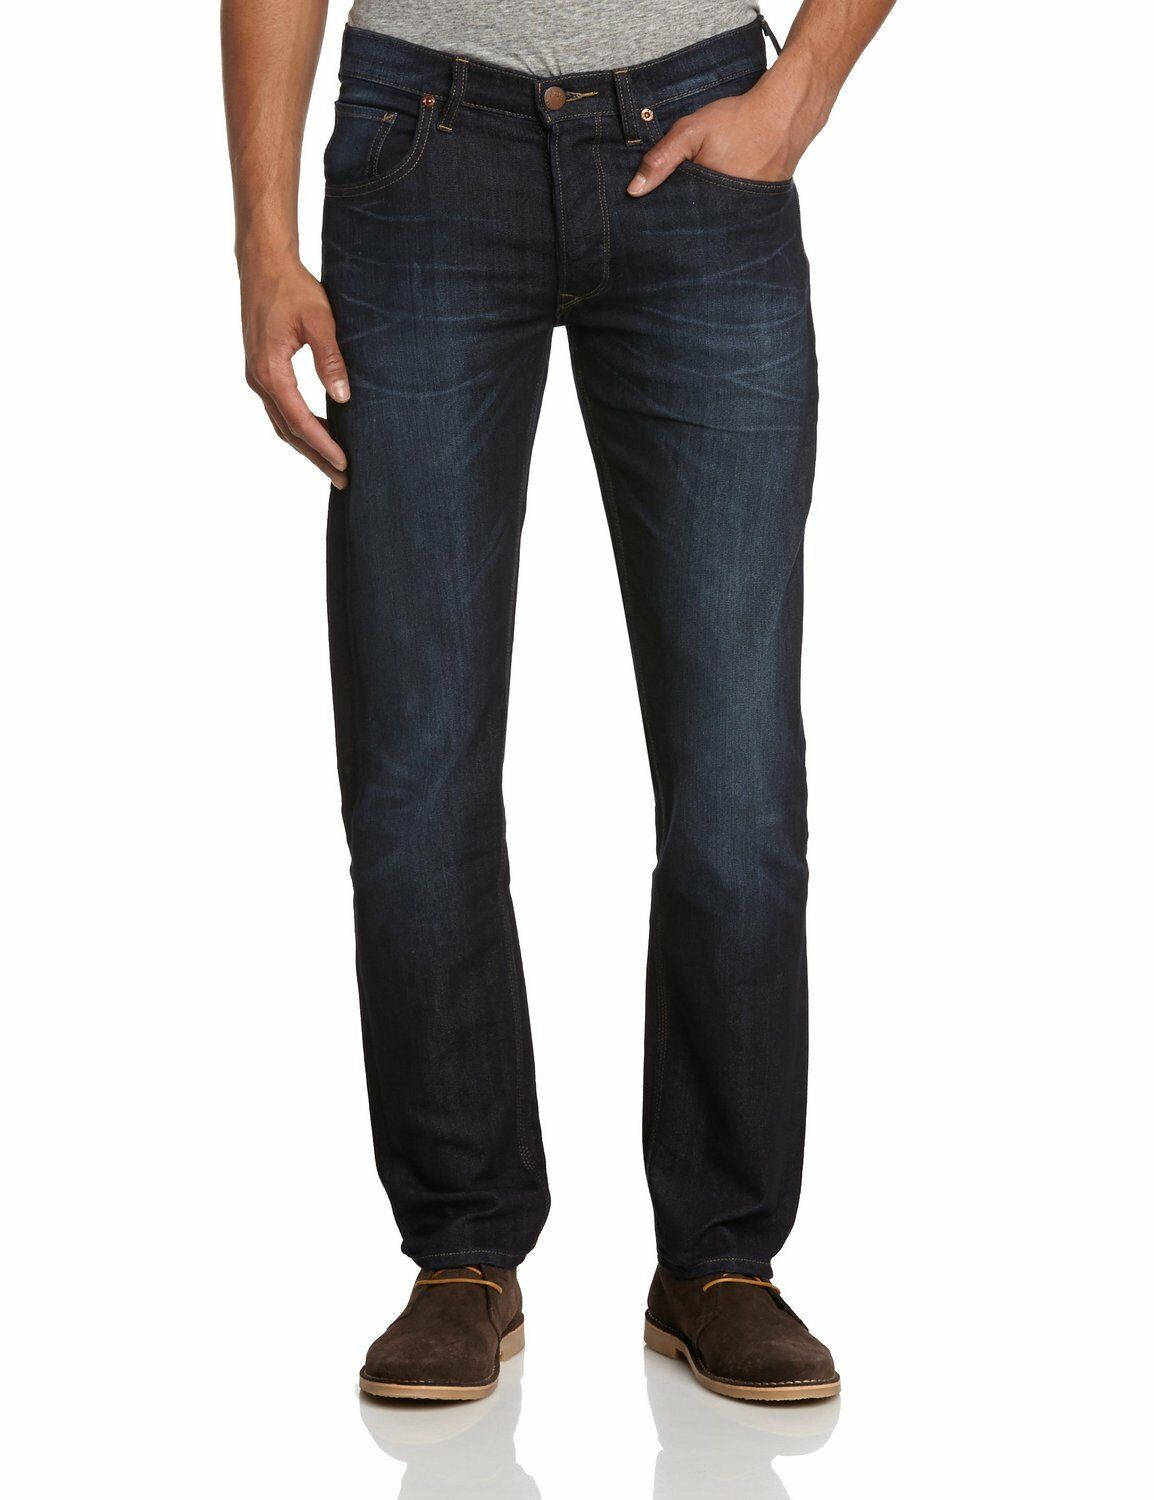 New Men's Lee Daren Slim Denim Jeans Dark Vintage Strong Hand Straight Leg Faded